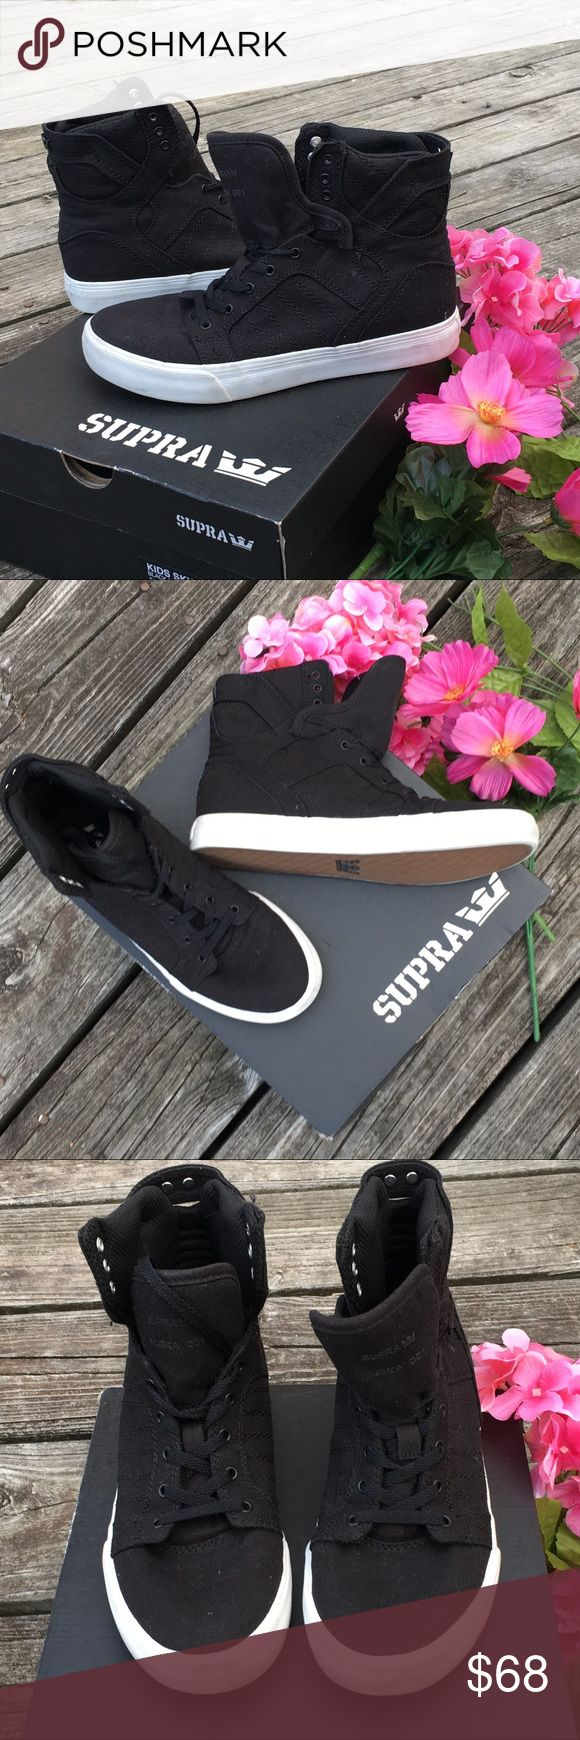 Supra high top sneakers Super high top canvas boys sneakers. Vulcanized rubber sole. Padded collar. New with tags and box. Will fit women size 6. I'm putting size 6 down but please not it's a boys 5. Bundle and save 15% Supra Shoes Sneakers